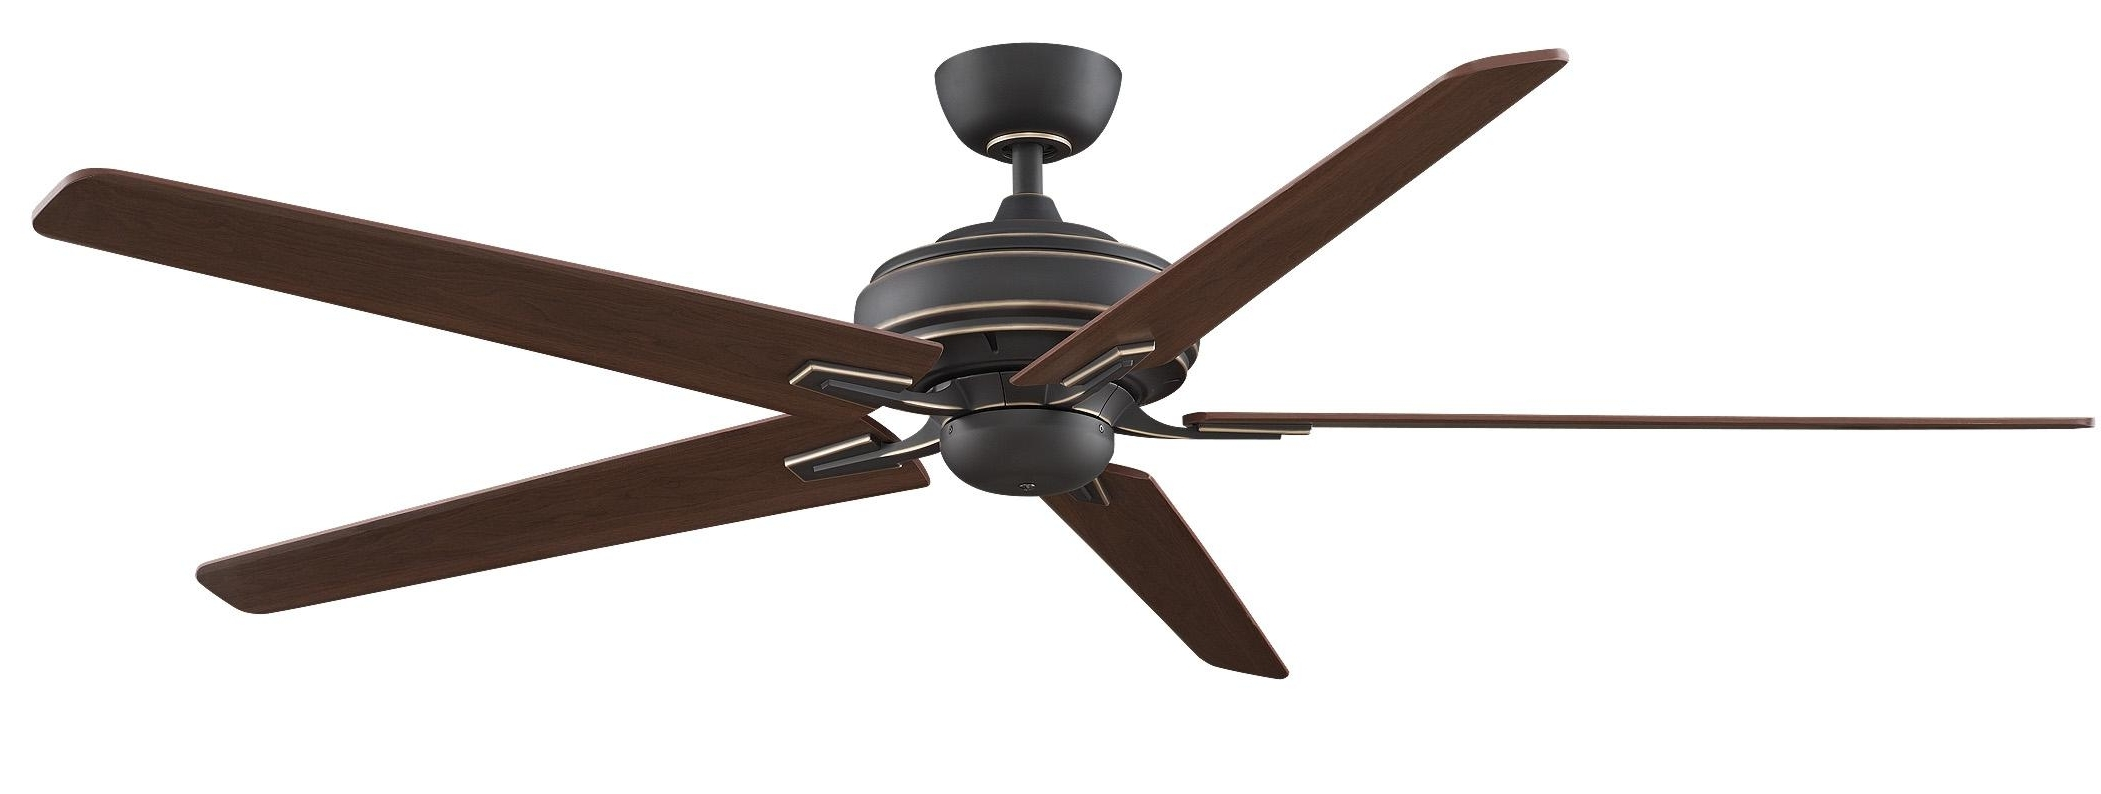 Favorite Inch Outdoor Ceiling Fan With 60 Ceiling Fan With Light With Regard To 72 Inch Outdoor Ceiling Fans (View 10 of 20)